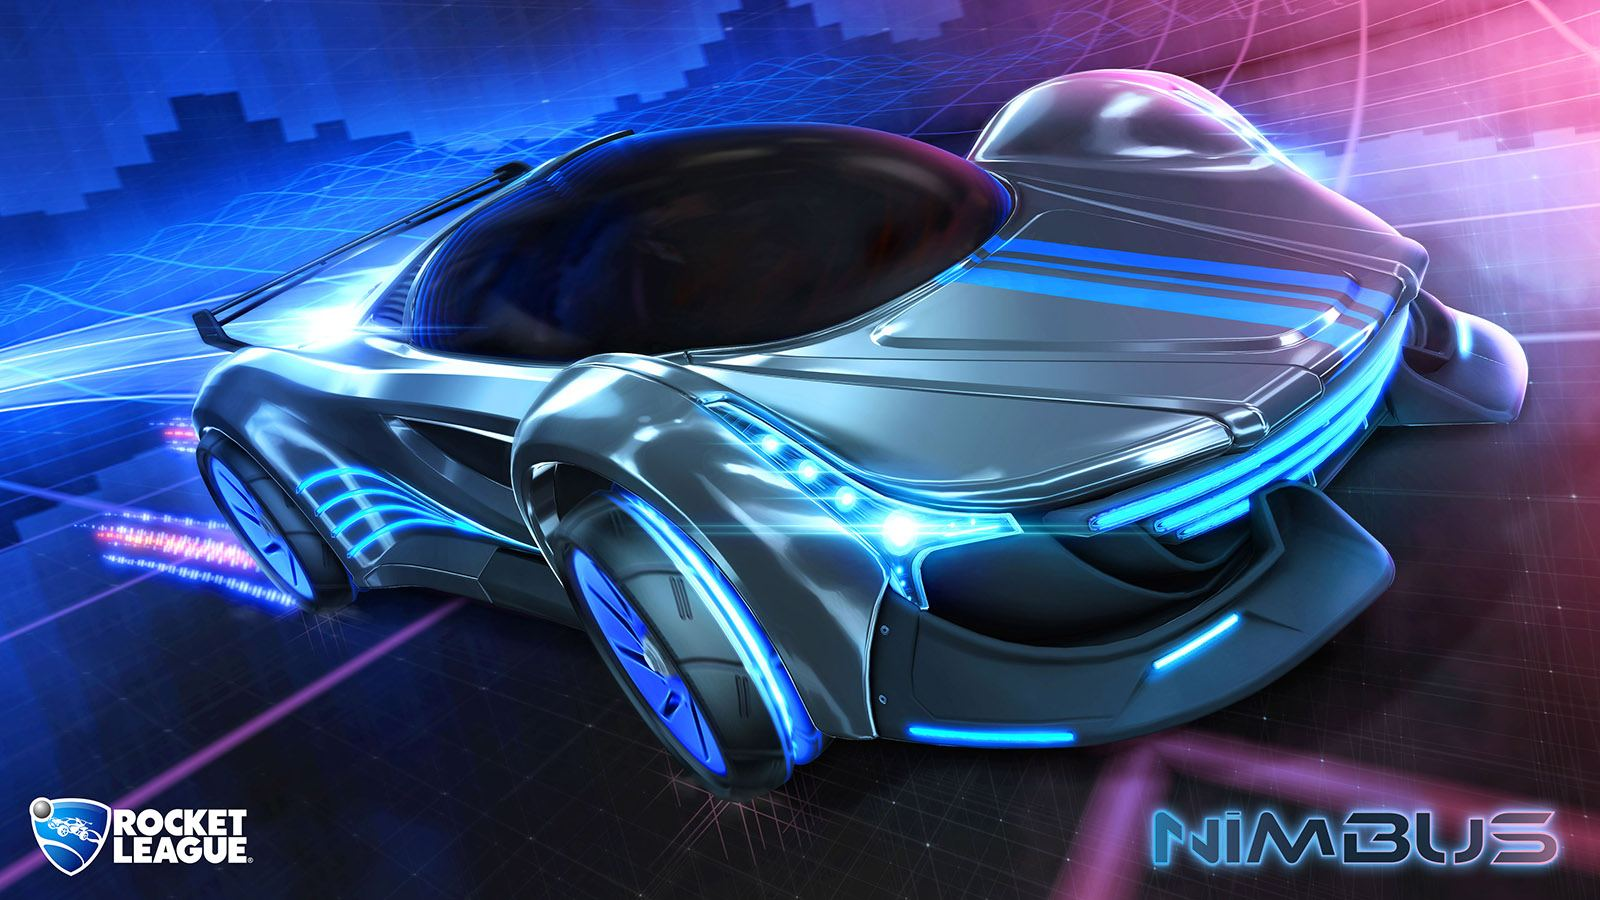 Nuevo Coche Para Rocket League Nimbus En La Elevation Crate